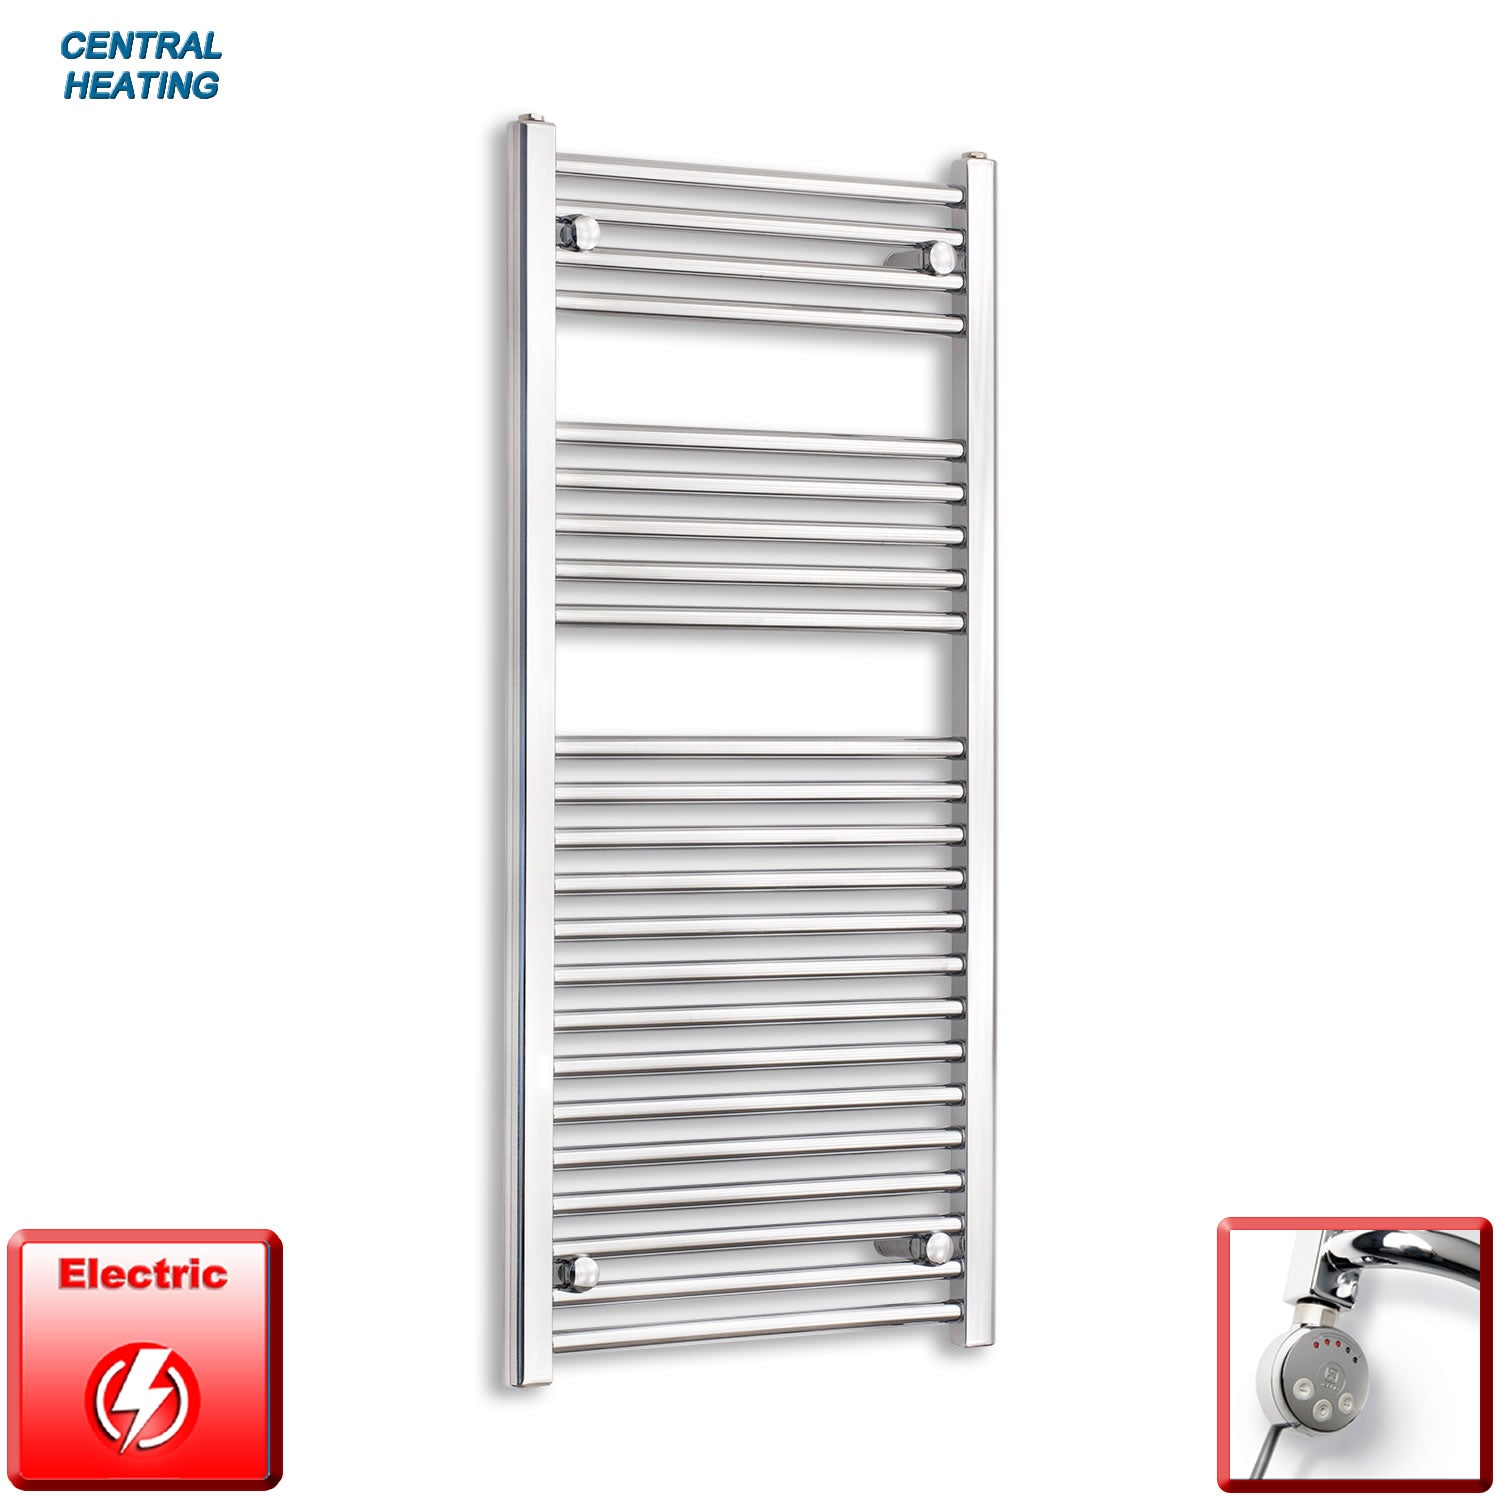 500mm Wide 1100mm High Pre-Filled Black Electric Towel Rail Radiator With Thermostatic MEG Element